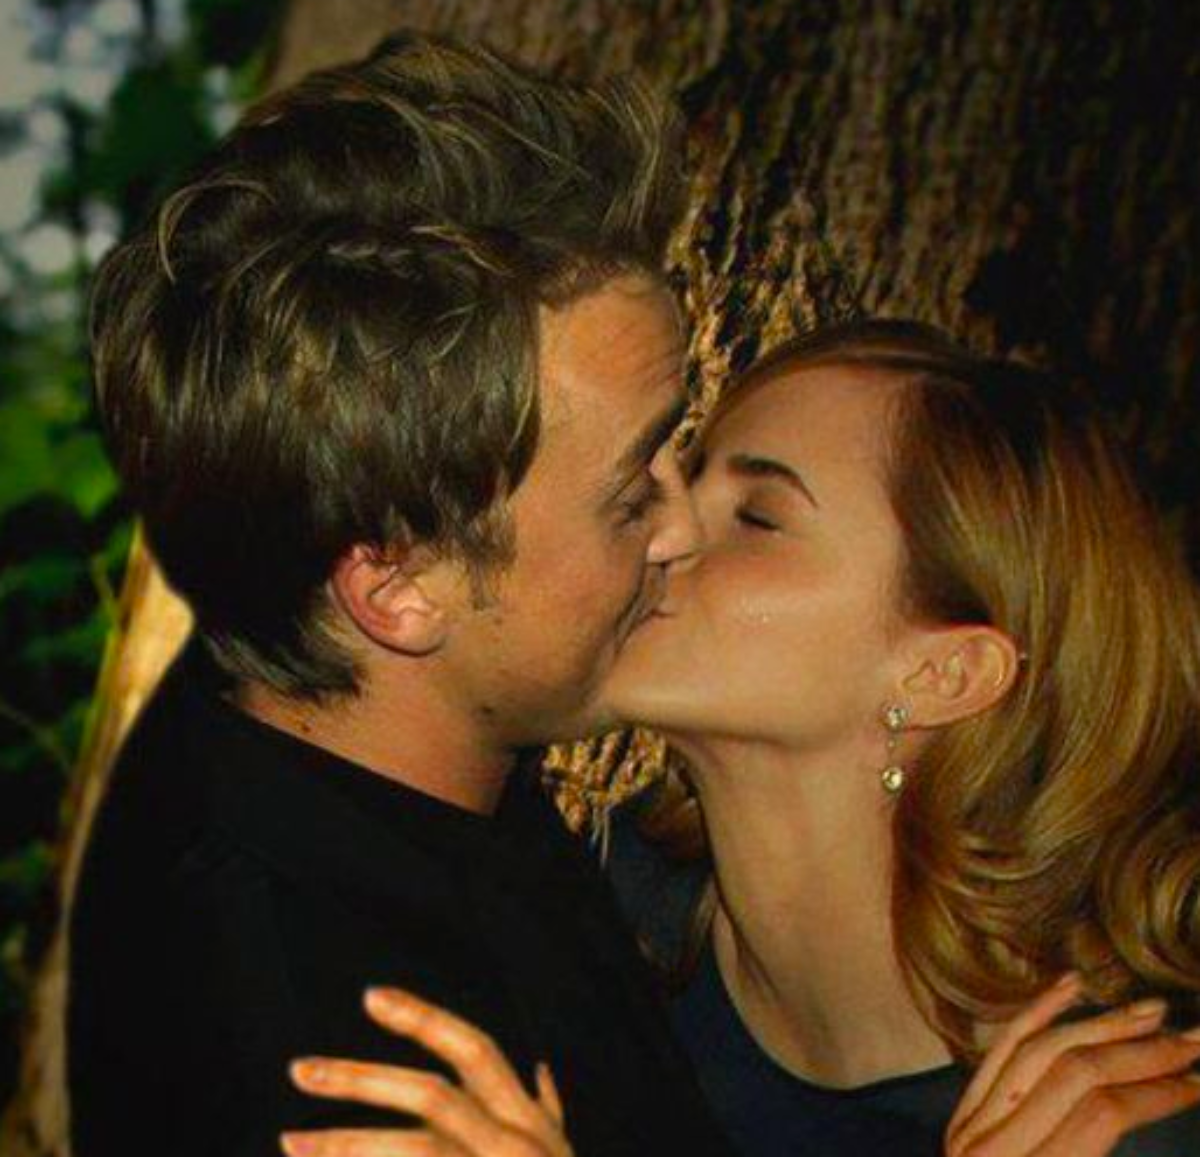 Photos Emma Watson Dating Tom Felton Secretly Confirmed Insta Chronicles